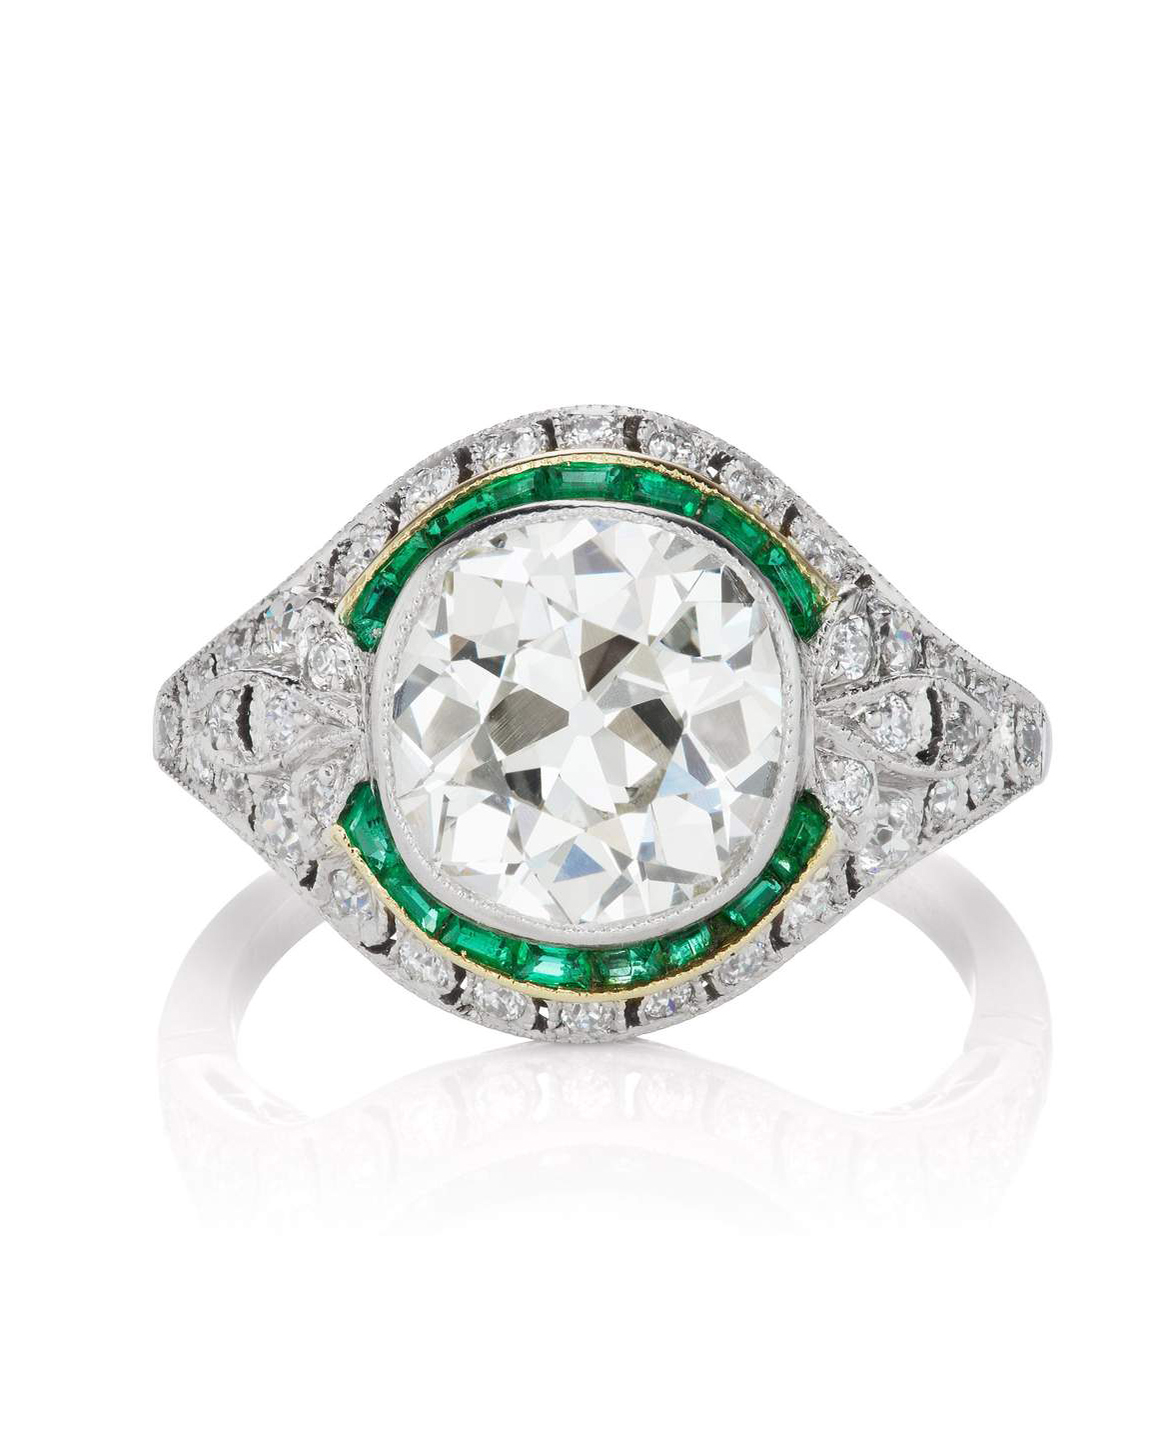 Bezel Set Diamond Emerald Halo Engagement Ring